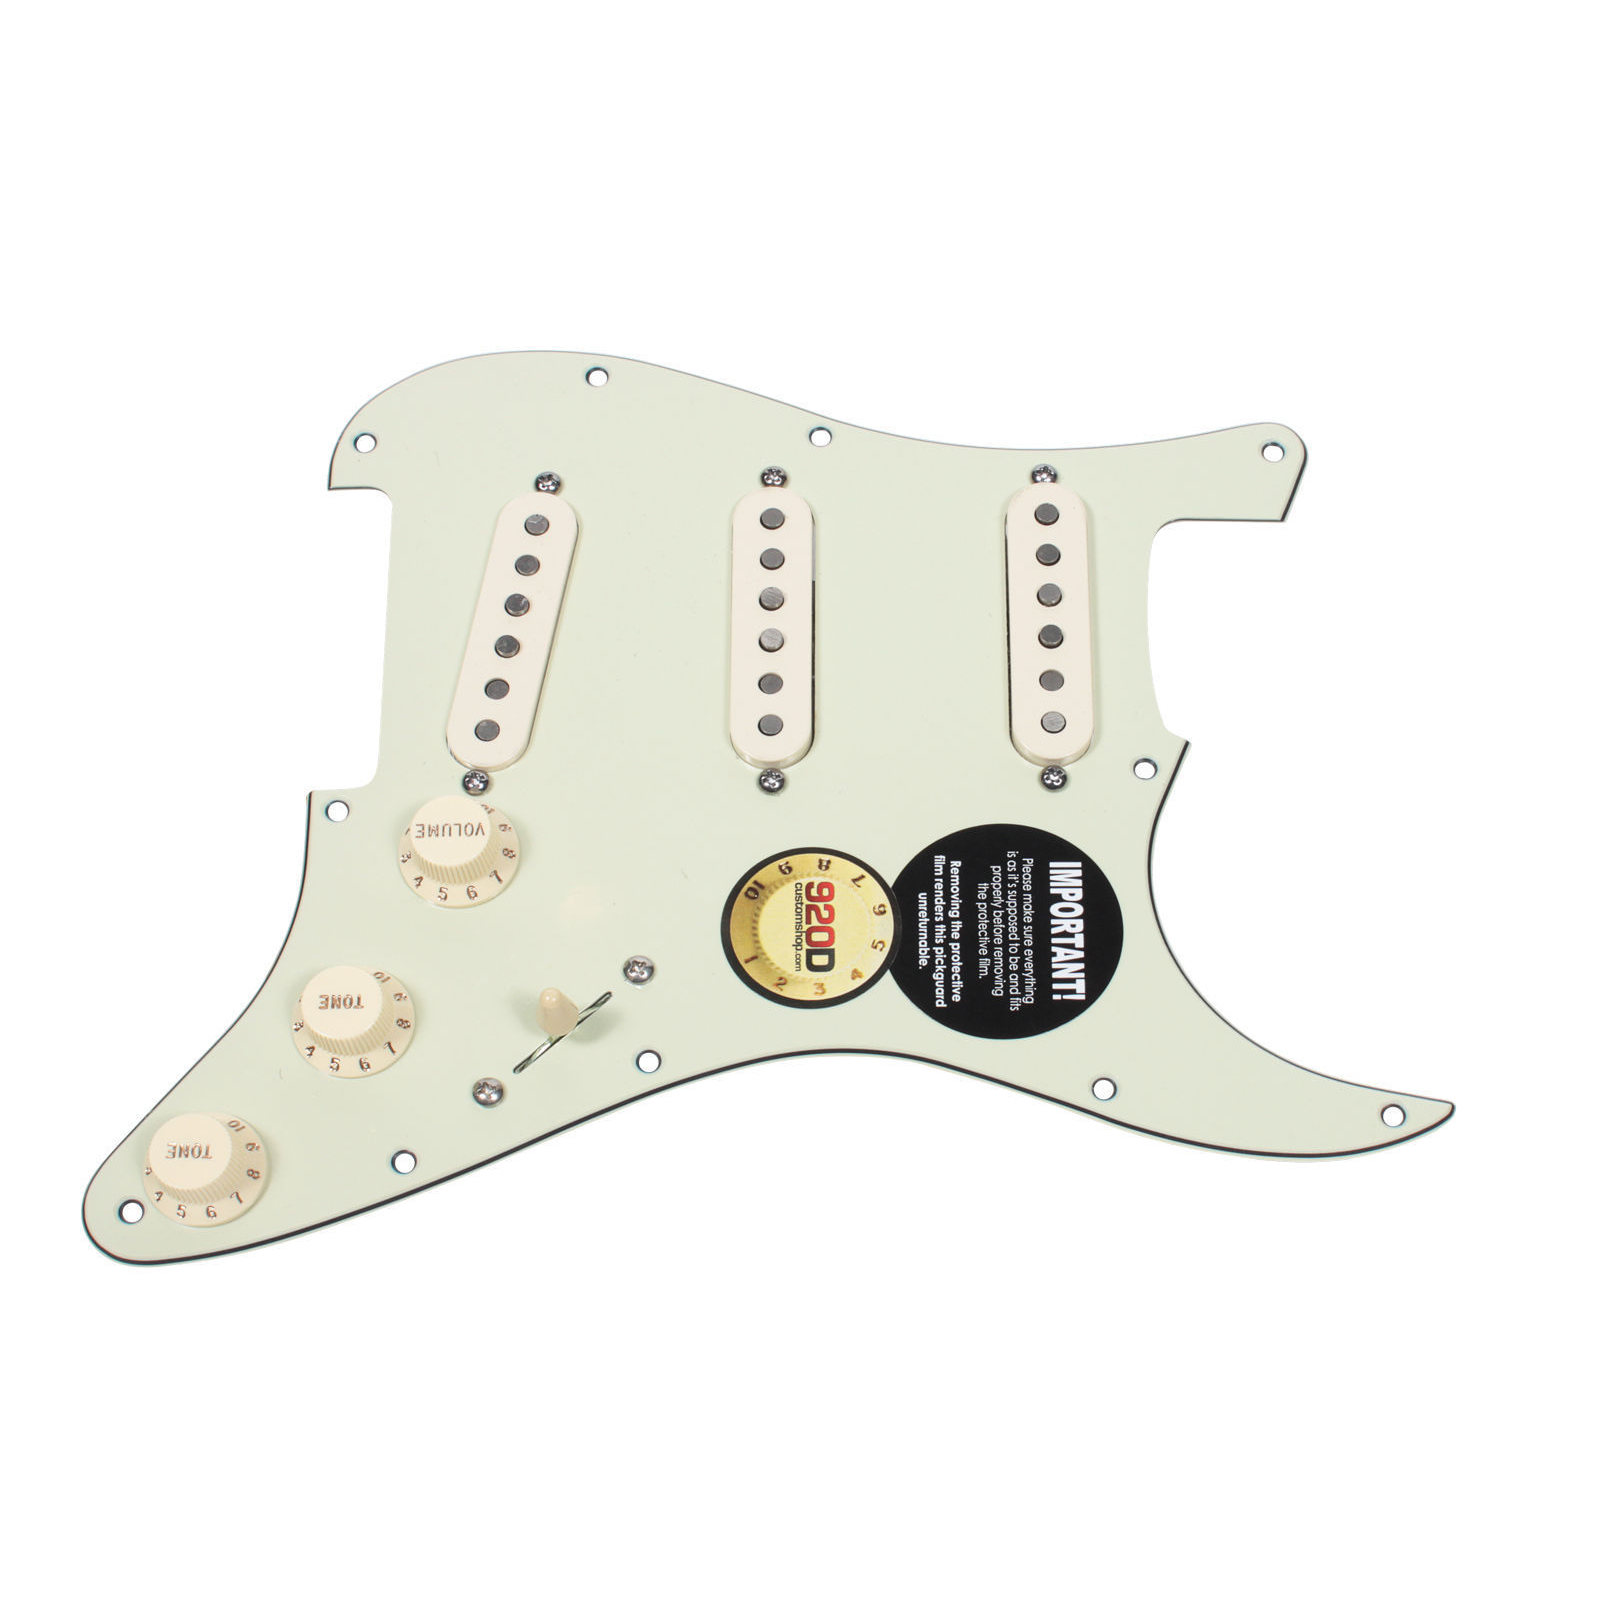 920D Loaded Strat Pickguard Klein Jazzy Cat Pickups 7 Way Switching MG AW by